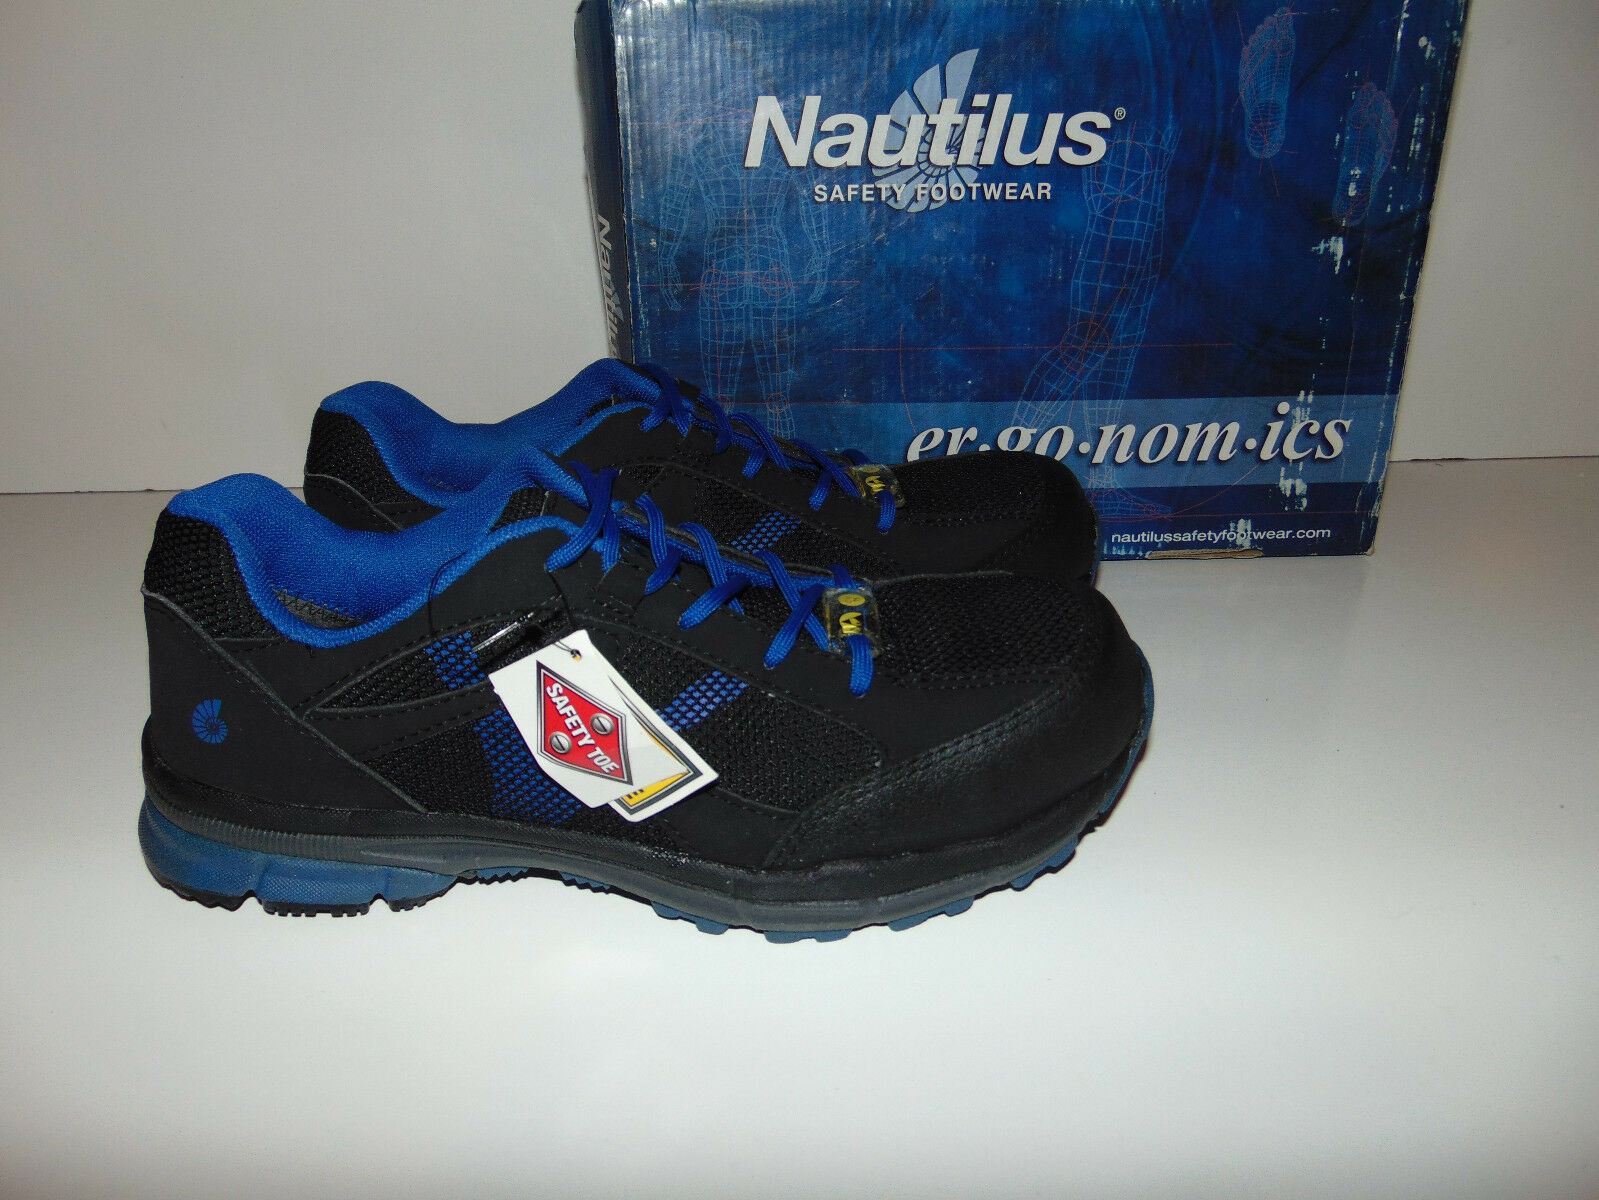 62fef3ca6a8 Nautilus Men s Blue Athletic Work Shoes Shoes Shoes - STEEL Toe - N1731 ALL  SIZES     f818dd